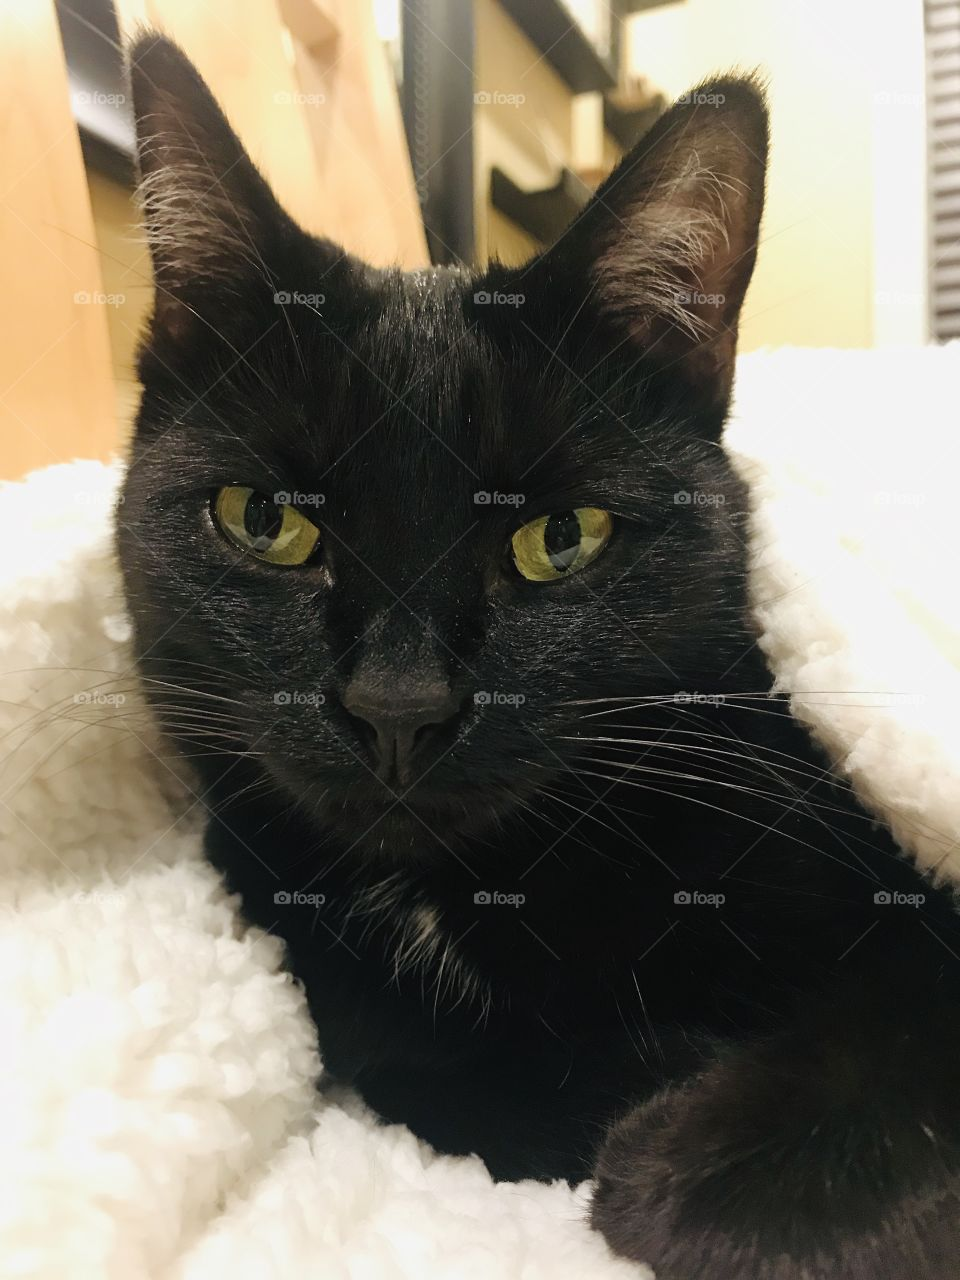 Fun photo with darling black kitty cat laying completely cuddled up in cozy white blanket!!